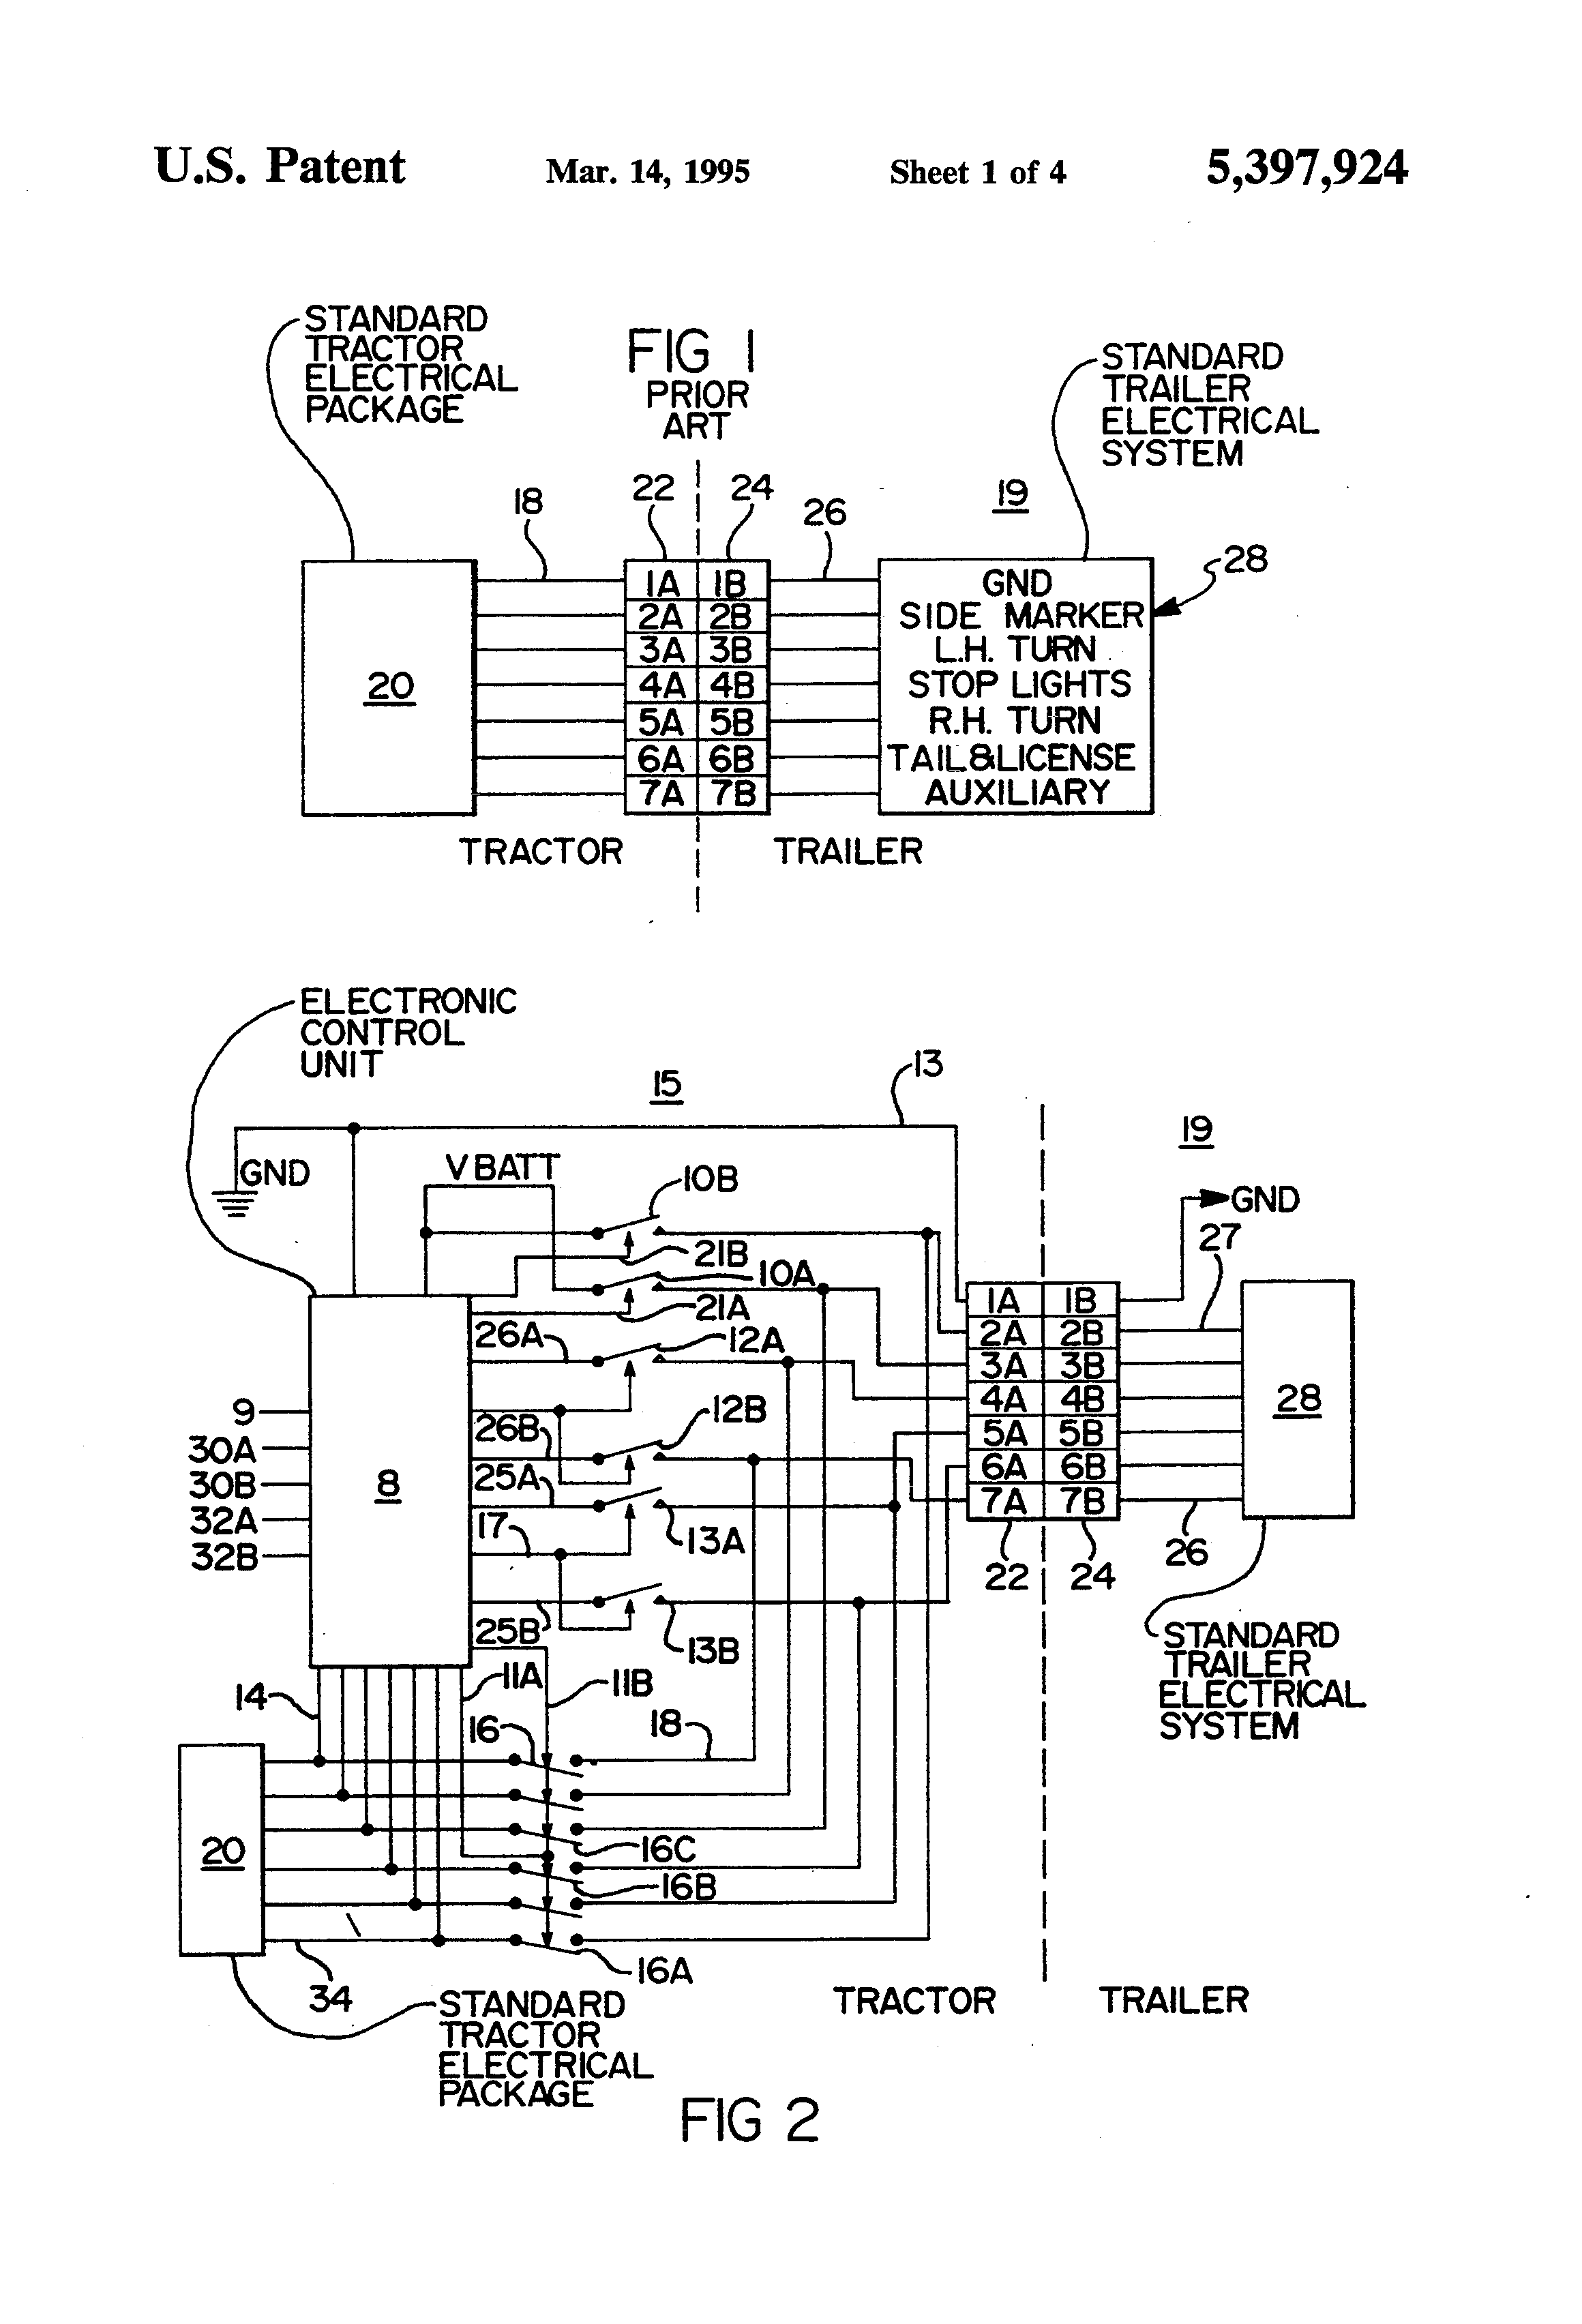 wabco wiring schematic wiring diagram third levelwabco wiring diagrams wiring schematic takeuchi wiring schematic wabco wiring diagrams electrical wiring diagrams ingersoll rand